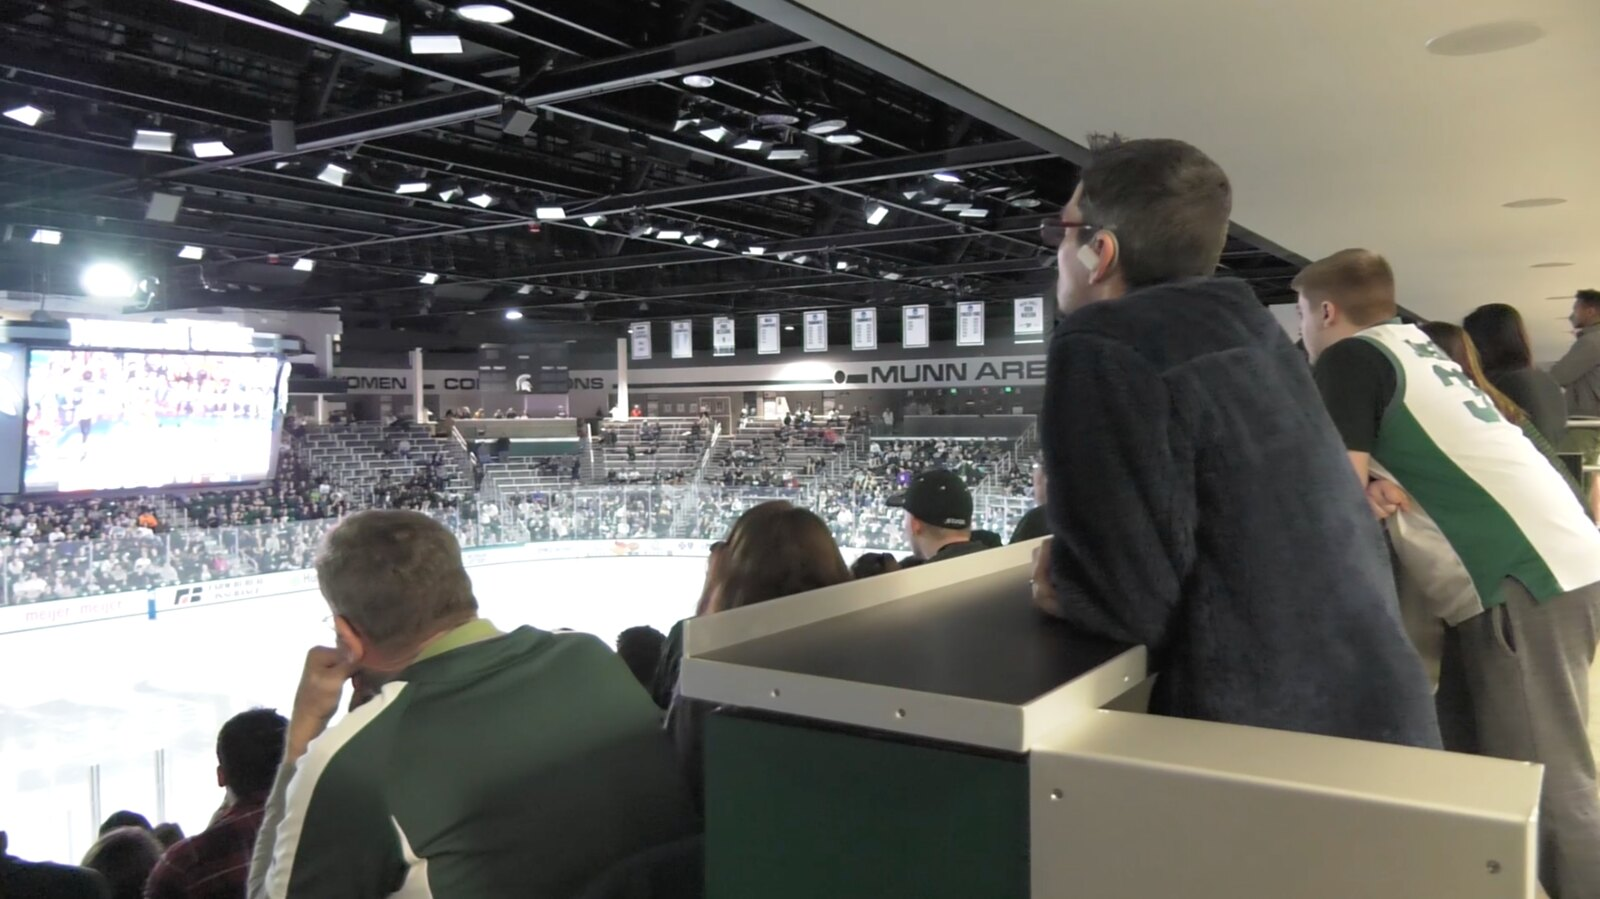 MSU Basketball Watch Party Ends in Sadness